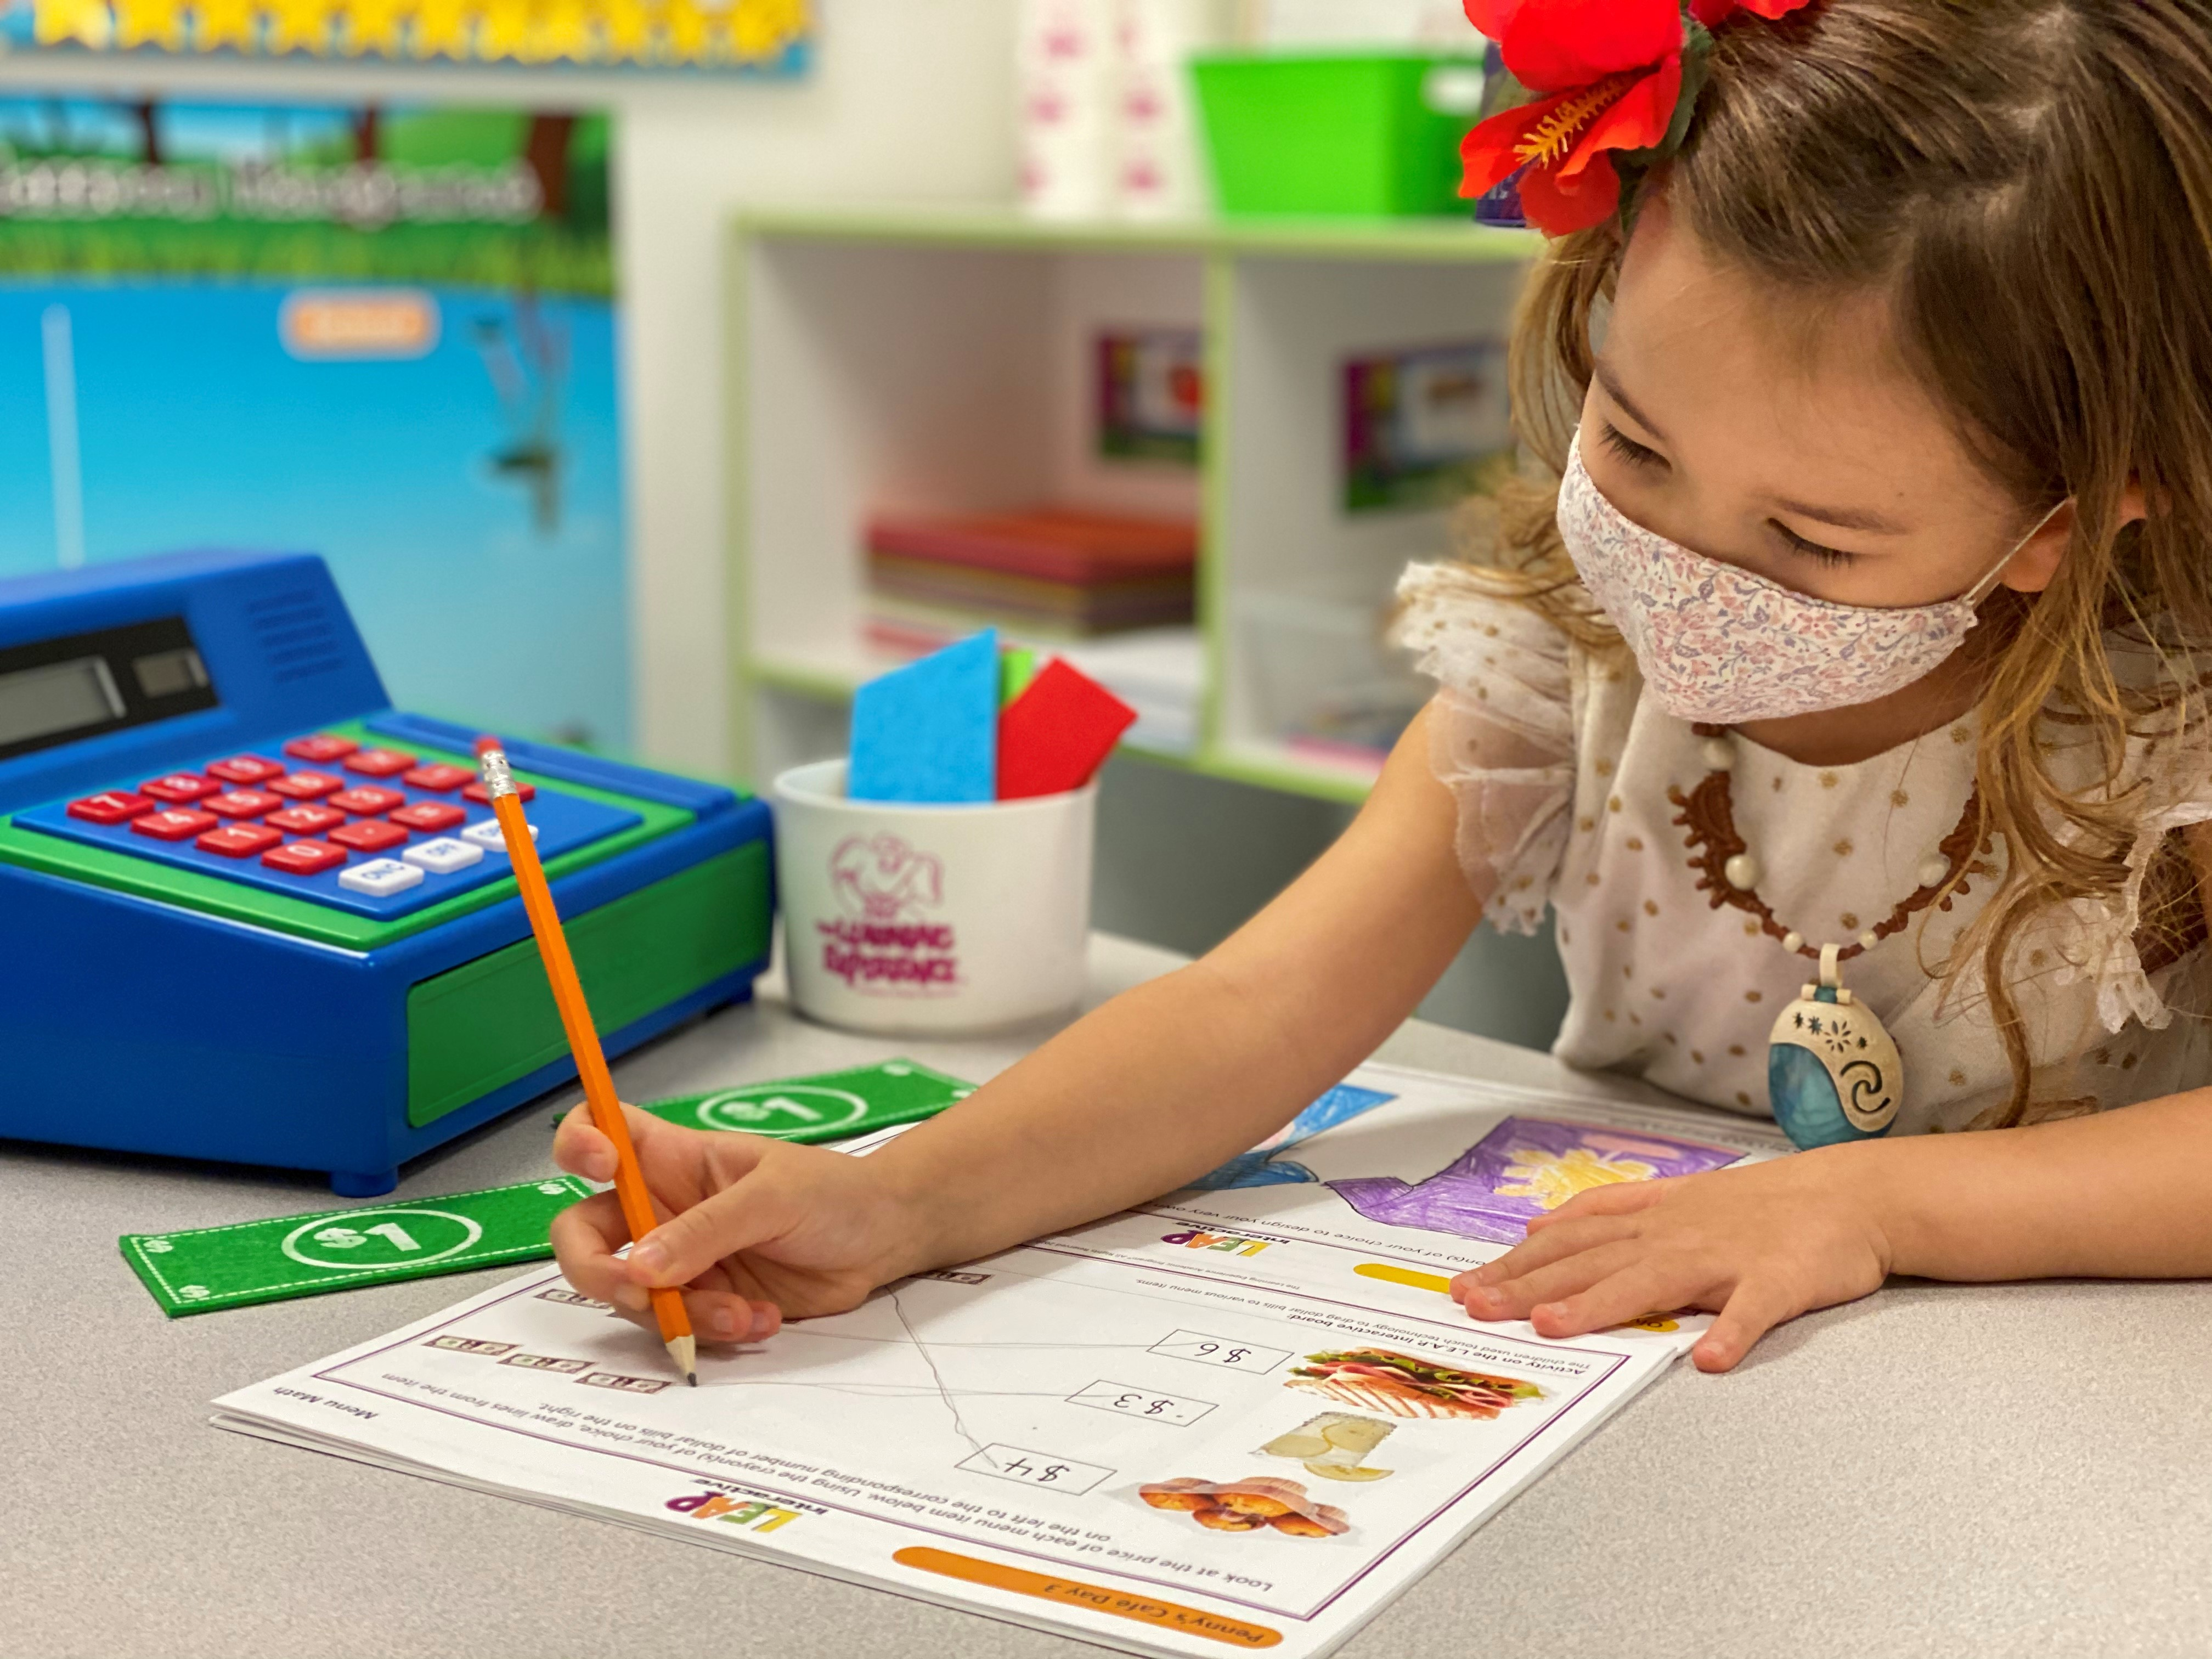 TLE's proprietary L.E.A.P.® (Learning Experience Academic Program) curriculum guarantees children will graduate TLE with exceptional core academic skills to give them an early start down their path towards a brighter future!